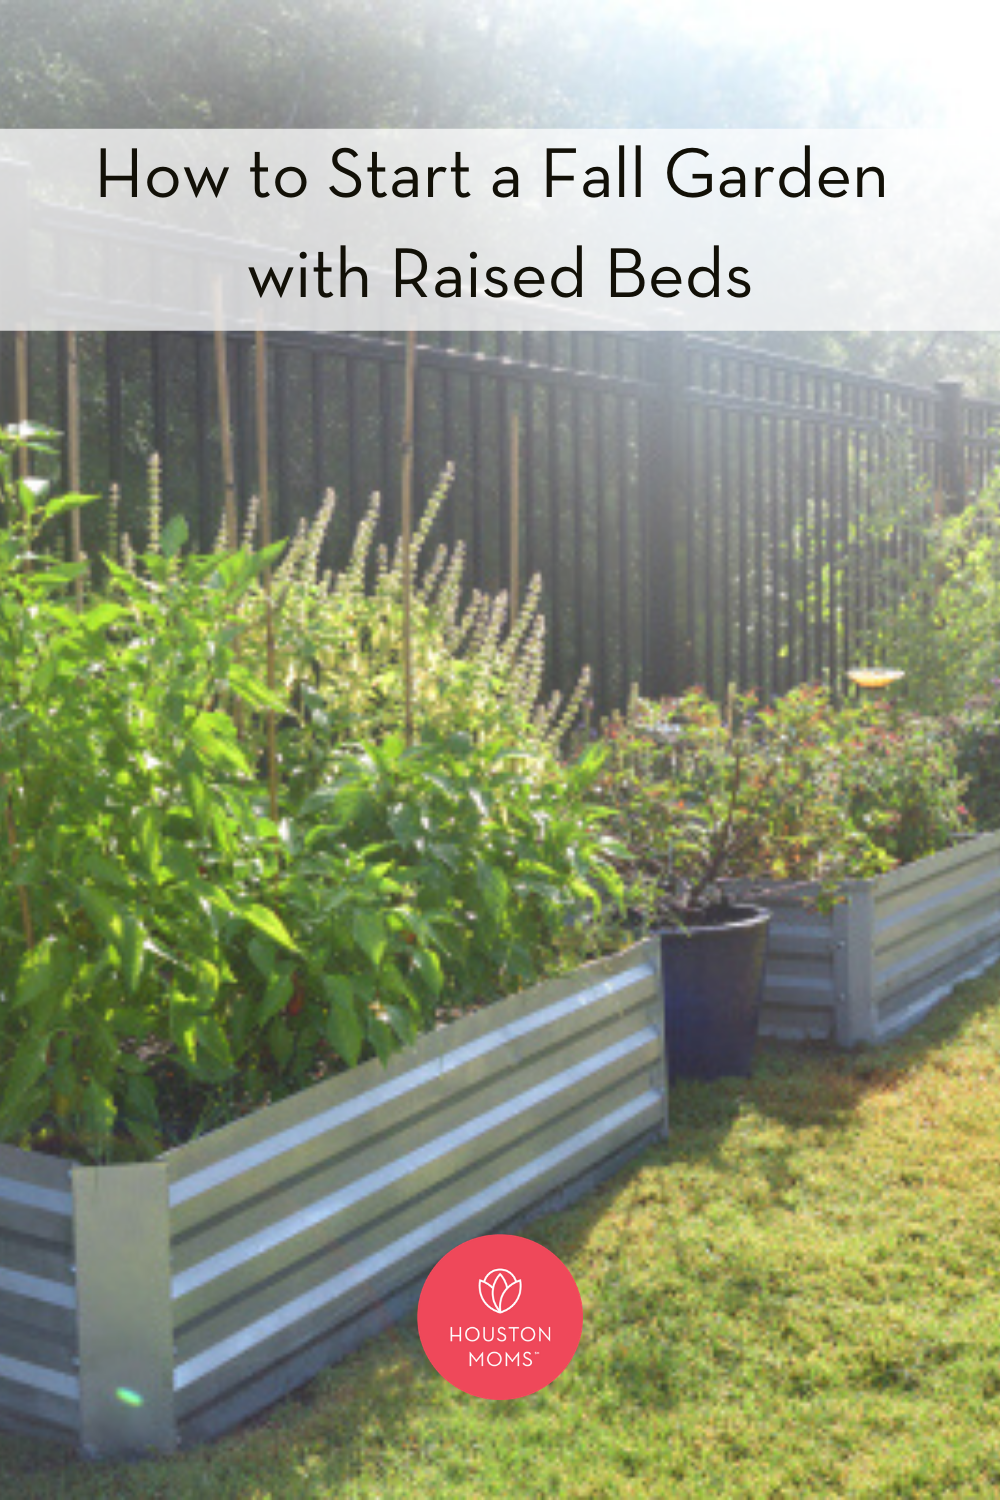 "Houston Moms ""How to Start a Fall Garden with Raised Beds"" #houstonmoms #houstonmomsblog #momsaroundhouston"